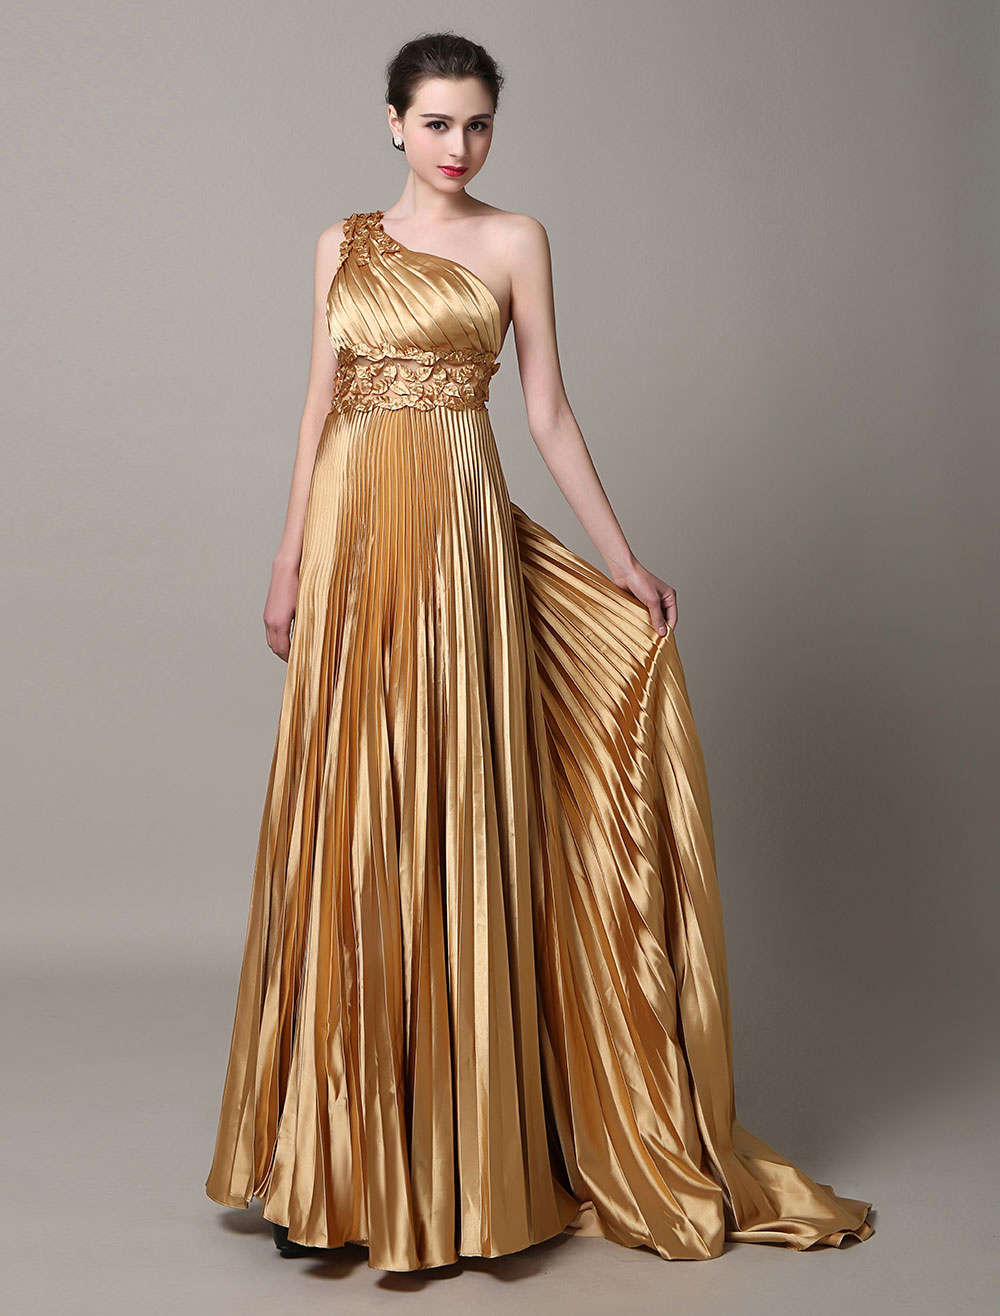 Gold evening dresses One Shoulder formal gowns pleated Sash Satin Prom Dress with train